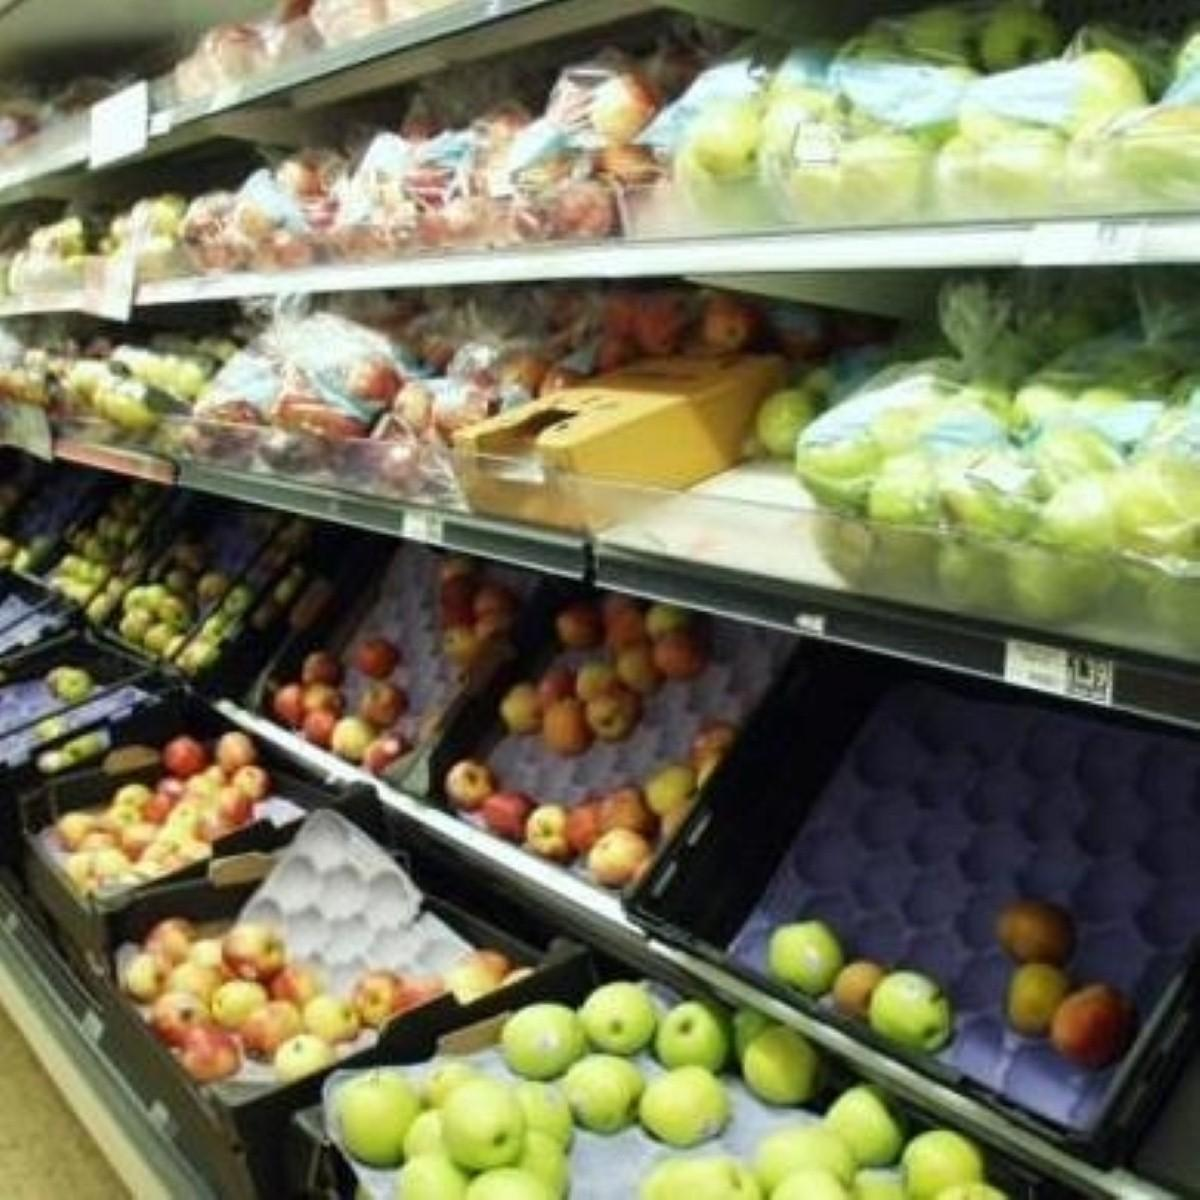 Diet and cancer risk 'indirectly linked'